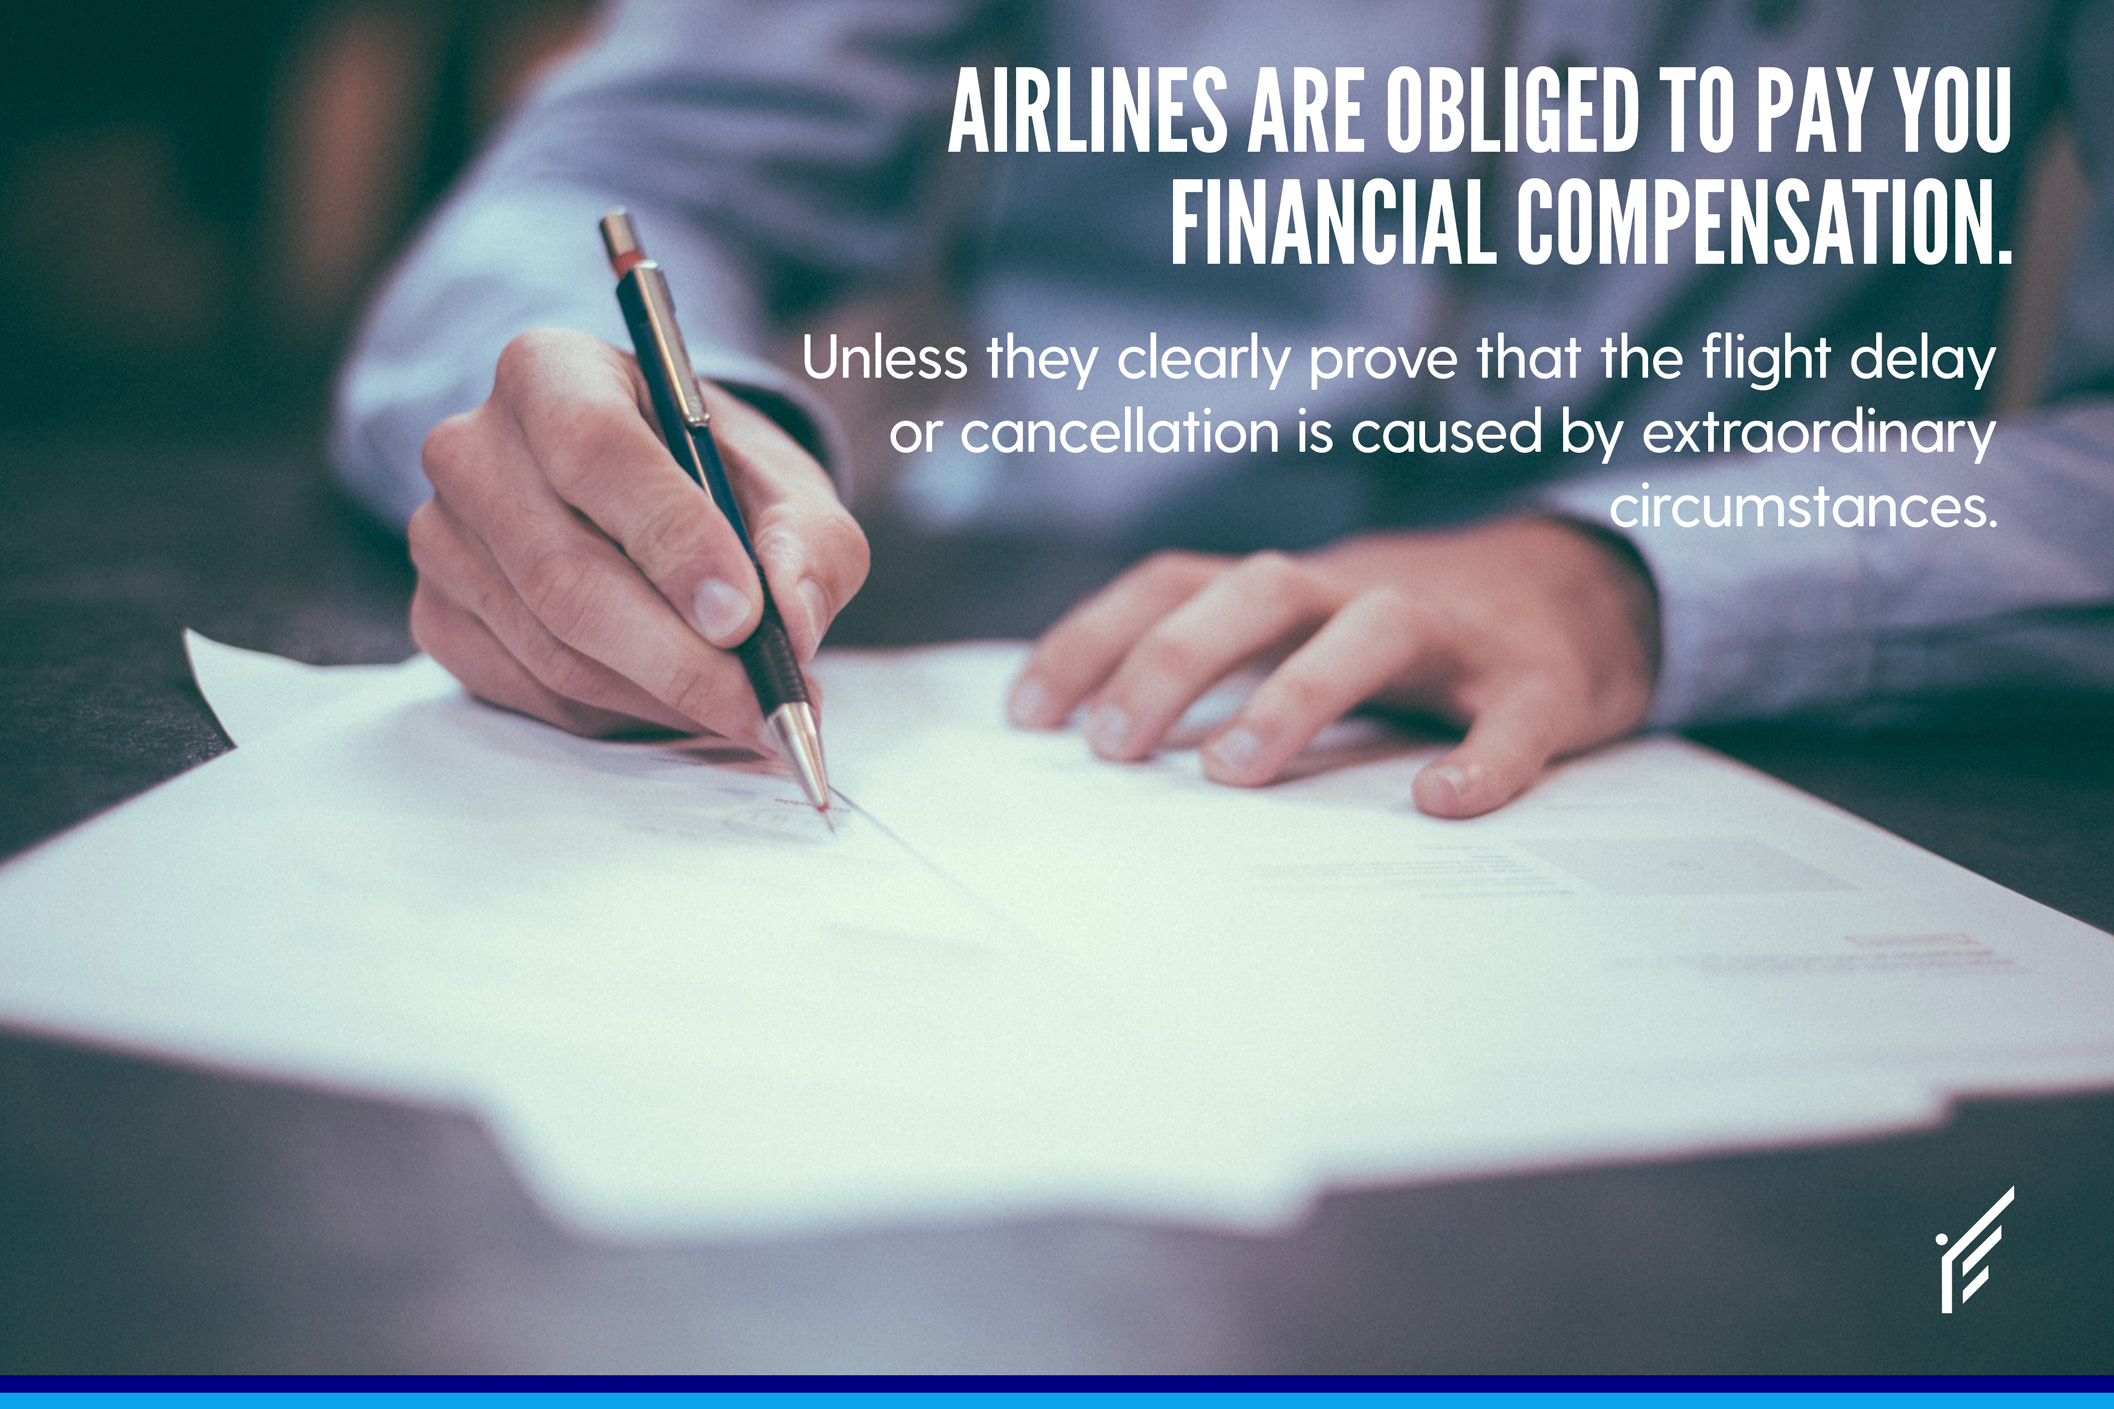 Airlines must always pay you compensation unless they give you clear evidence of extraordinary event